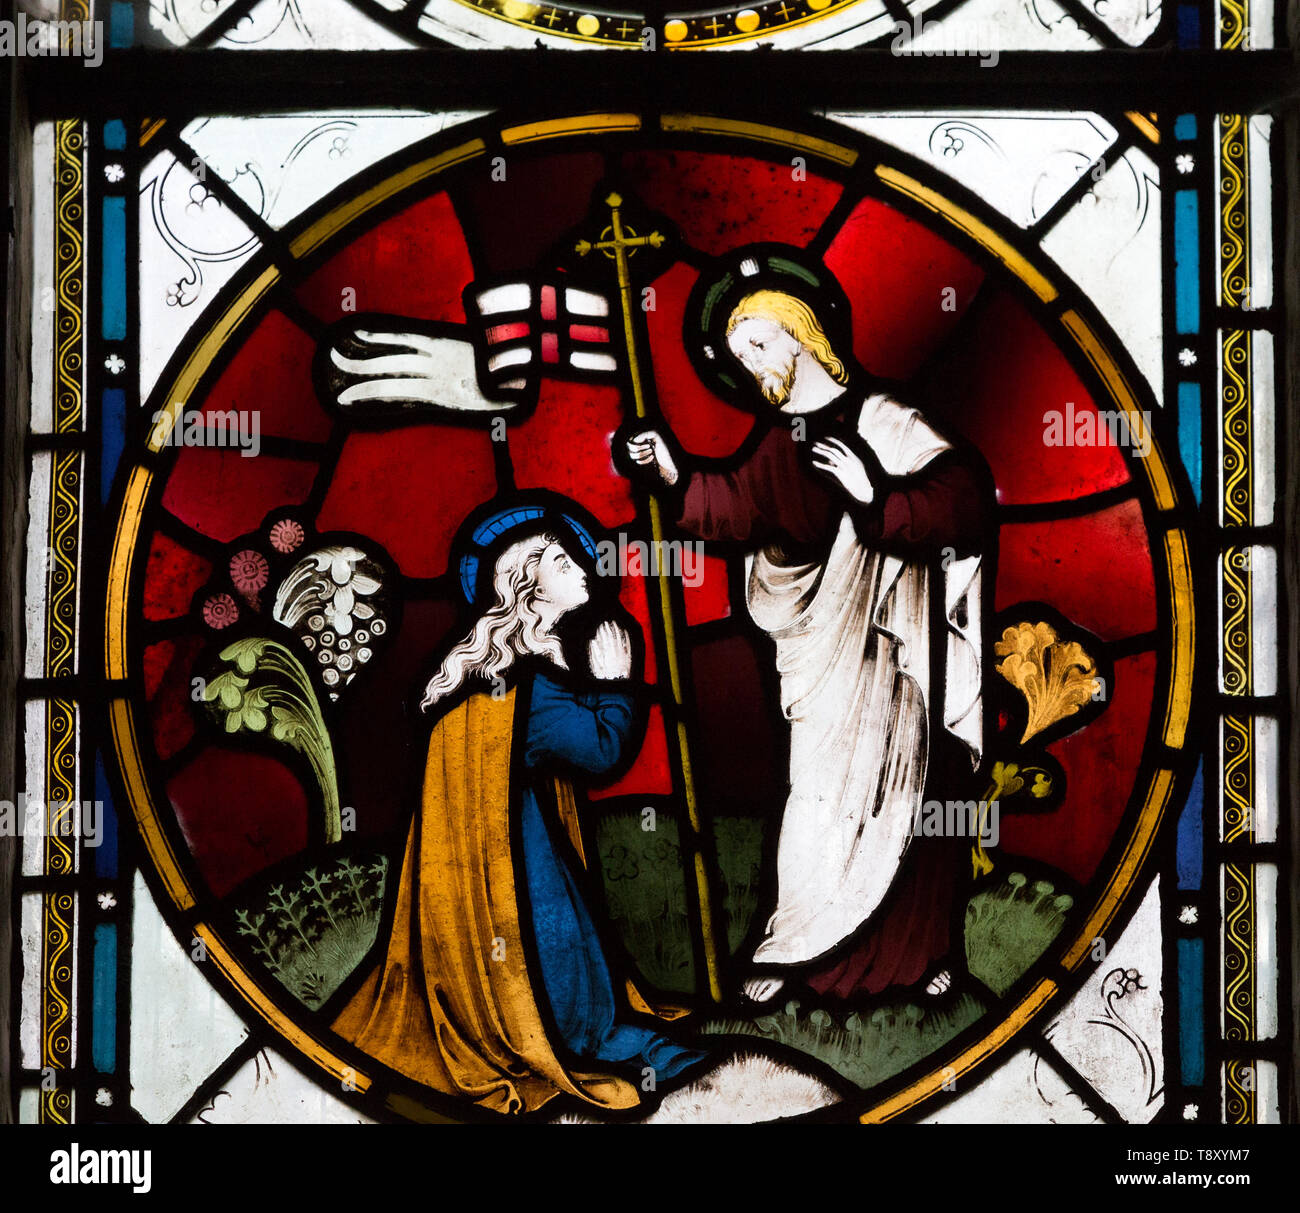 Stained glass window roundel Jesus Christ and Mary Magdelene 'Noli me Tangere'  James Powell and Sone, 1905  church of Saint Mary, Potterne, Wiltshire - Stock Image